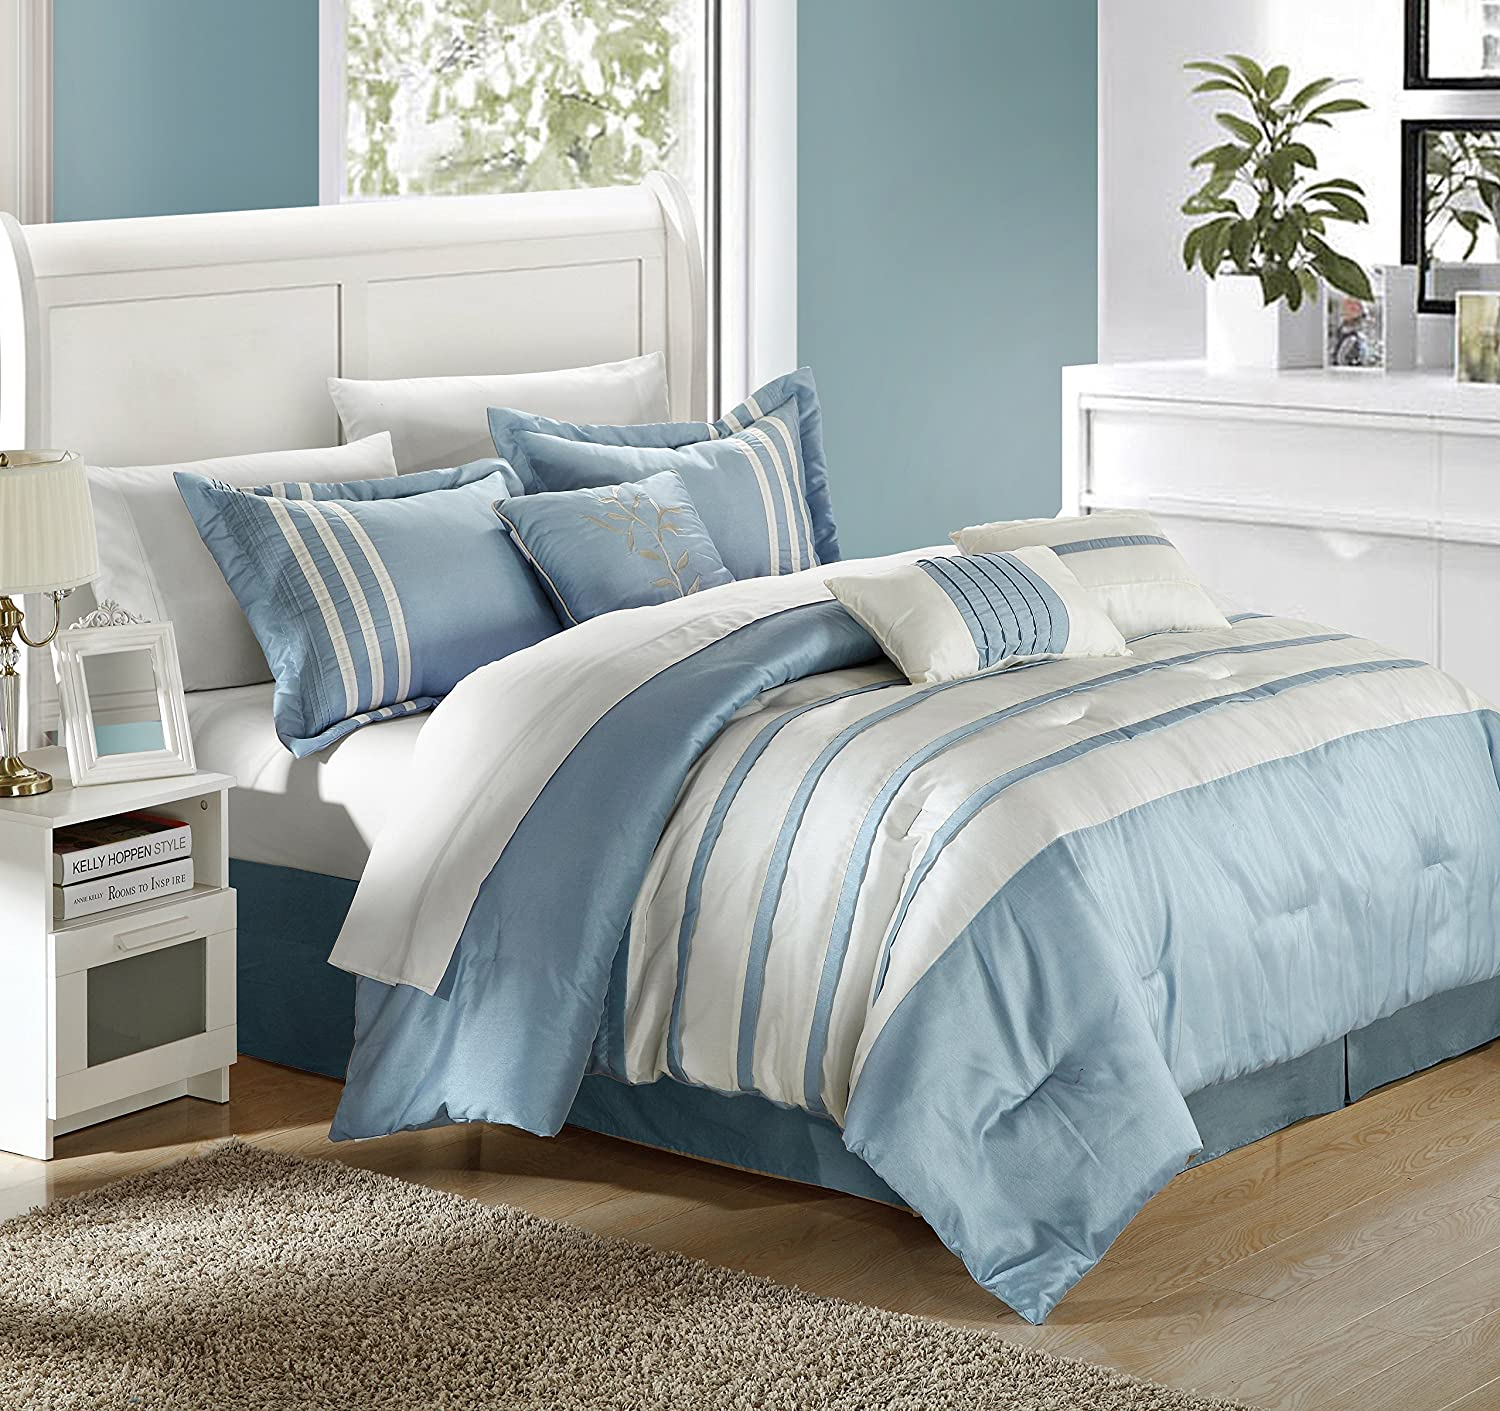 Luxury Bedding Collection 7-Piece Comforter Set, King, Blue